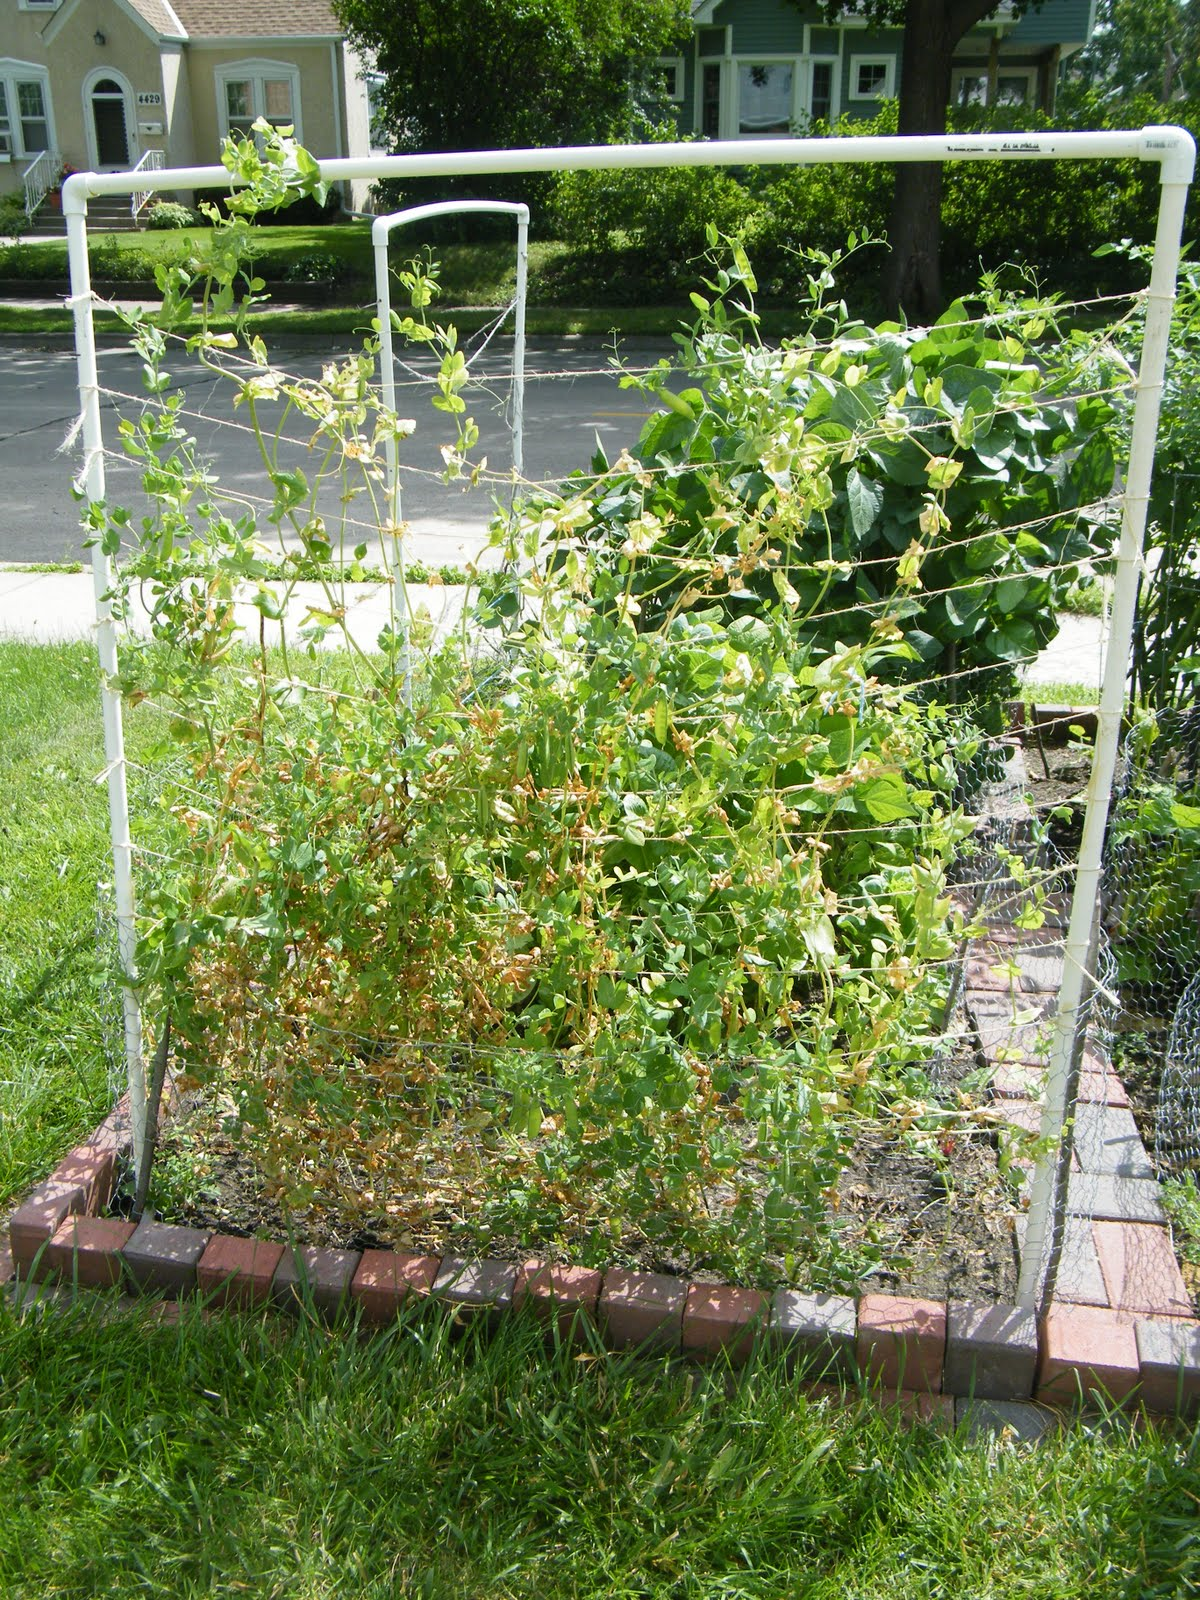 A minneapolis homestead vertical gardening how to build for How to make a vertical garden frame